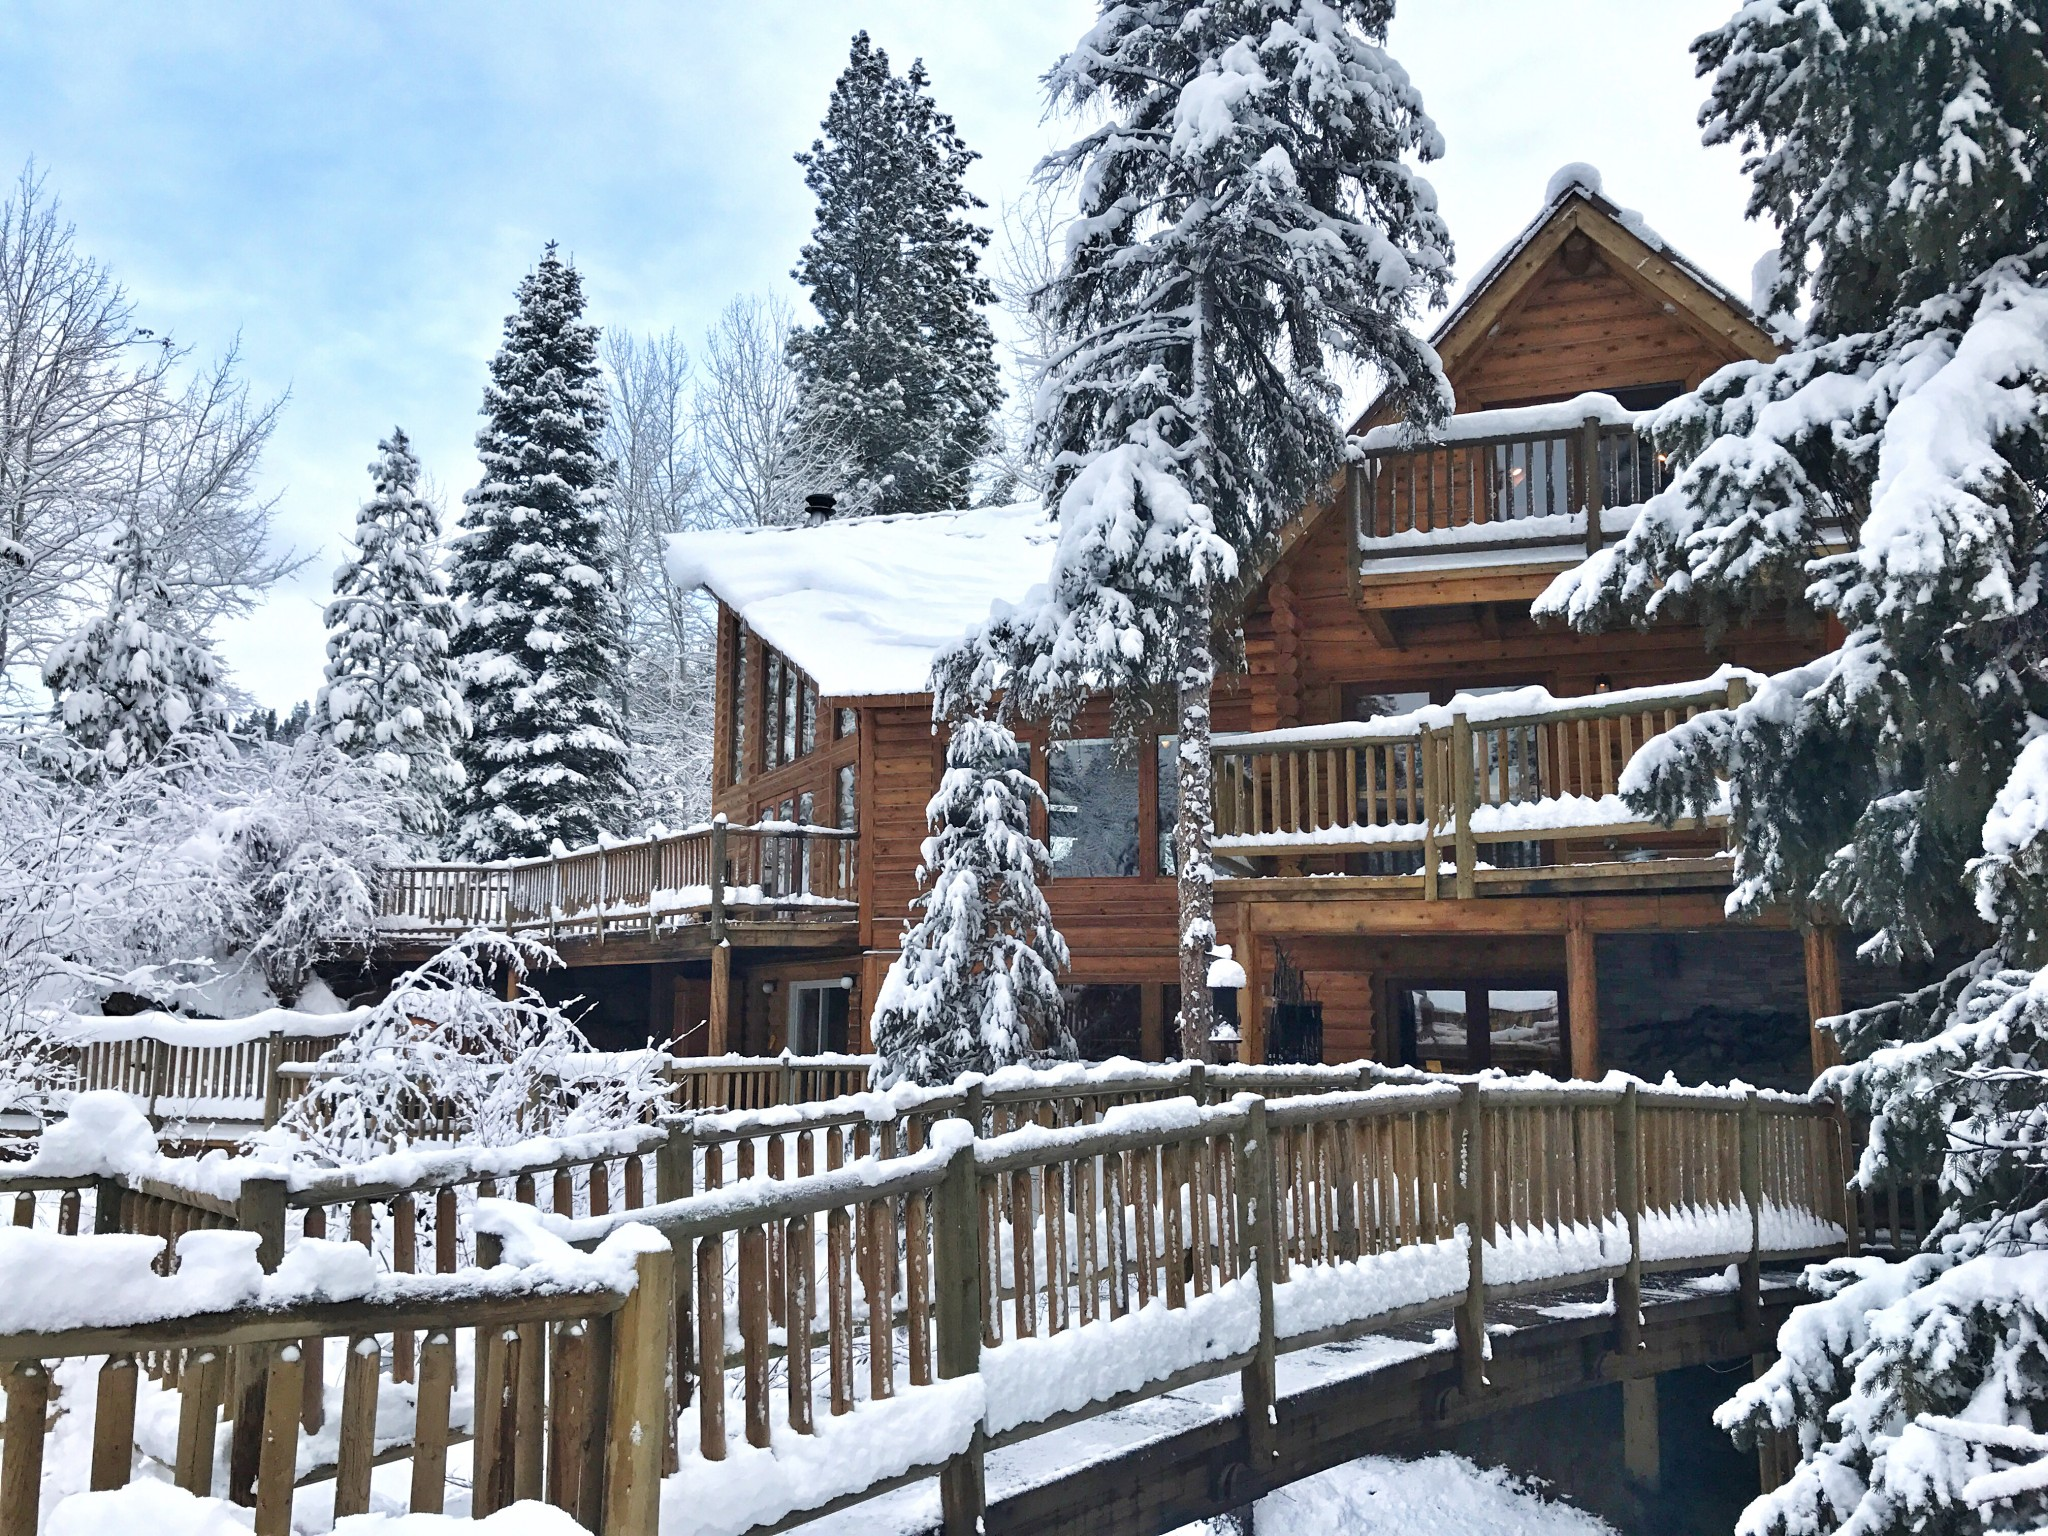 MONTANA, triple creek ranch, the-alyst.com